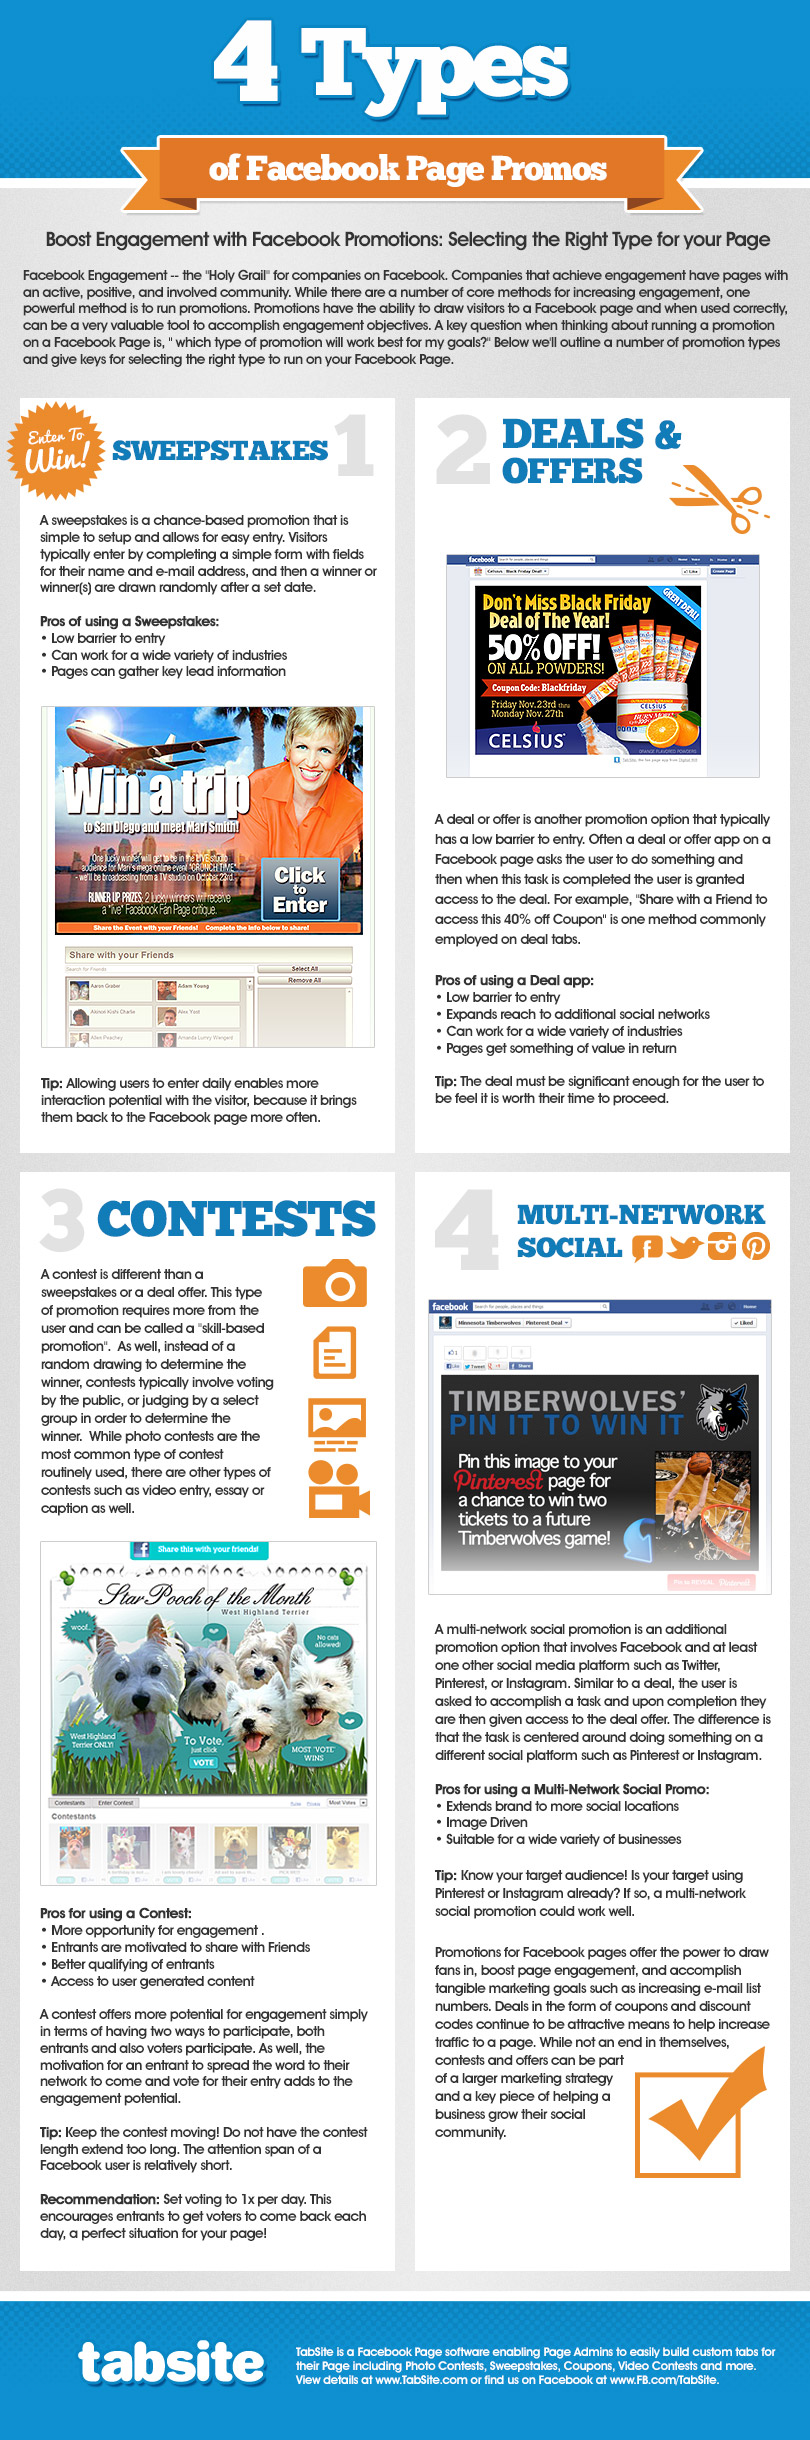 Facebook Page Promo Guide-Infographic